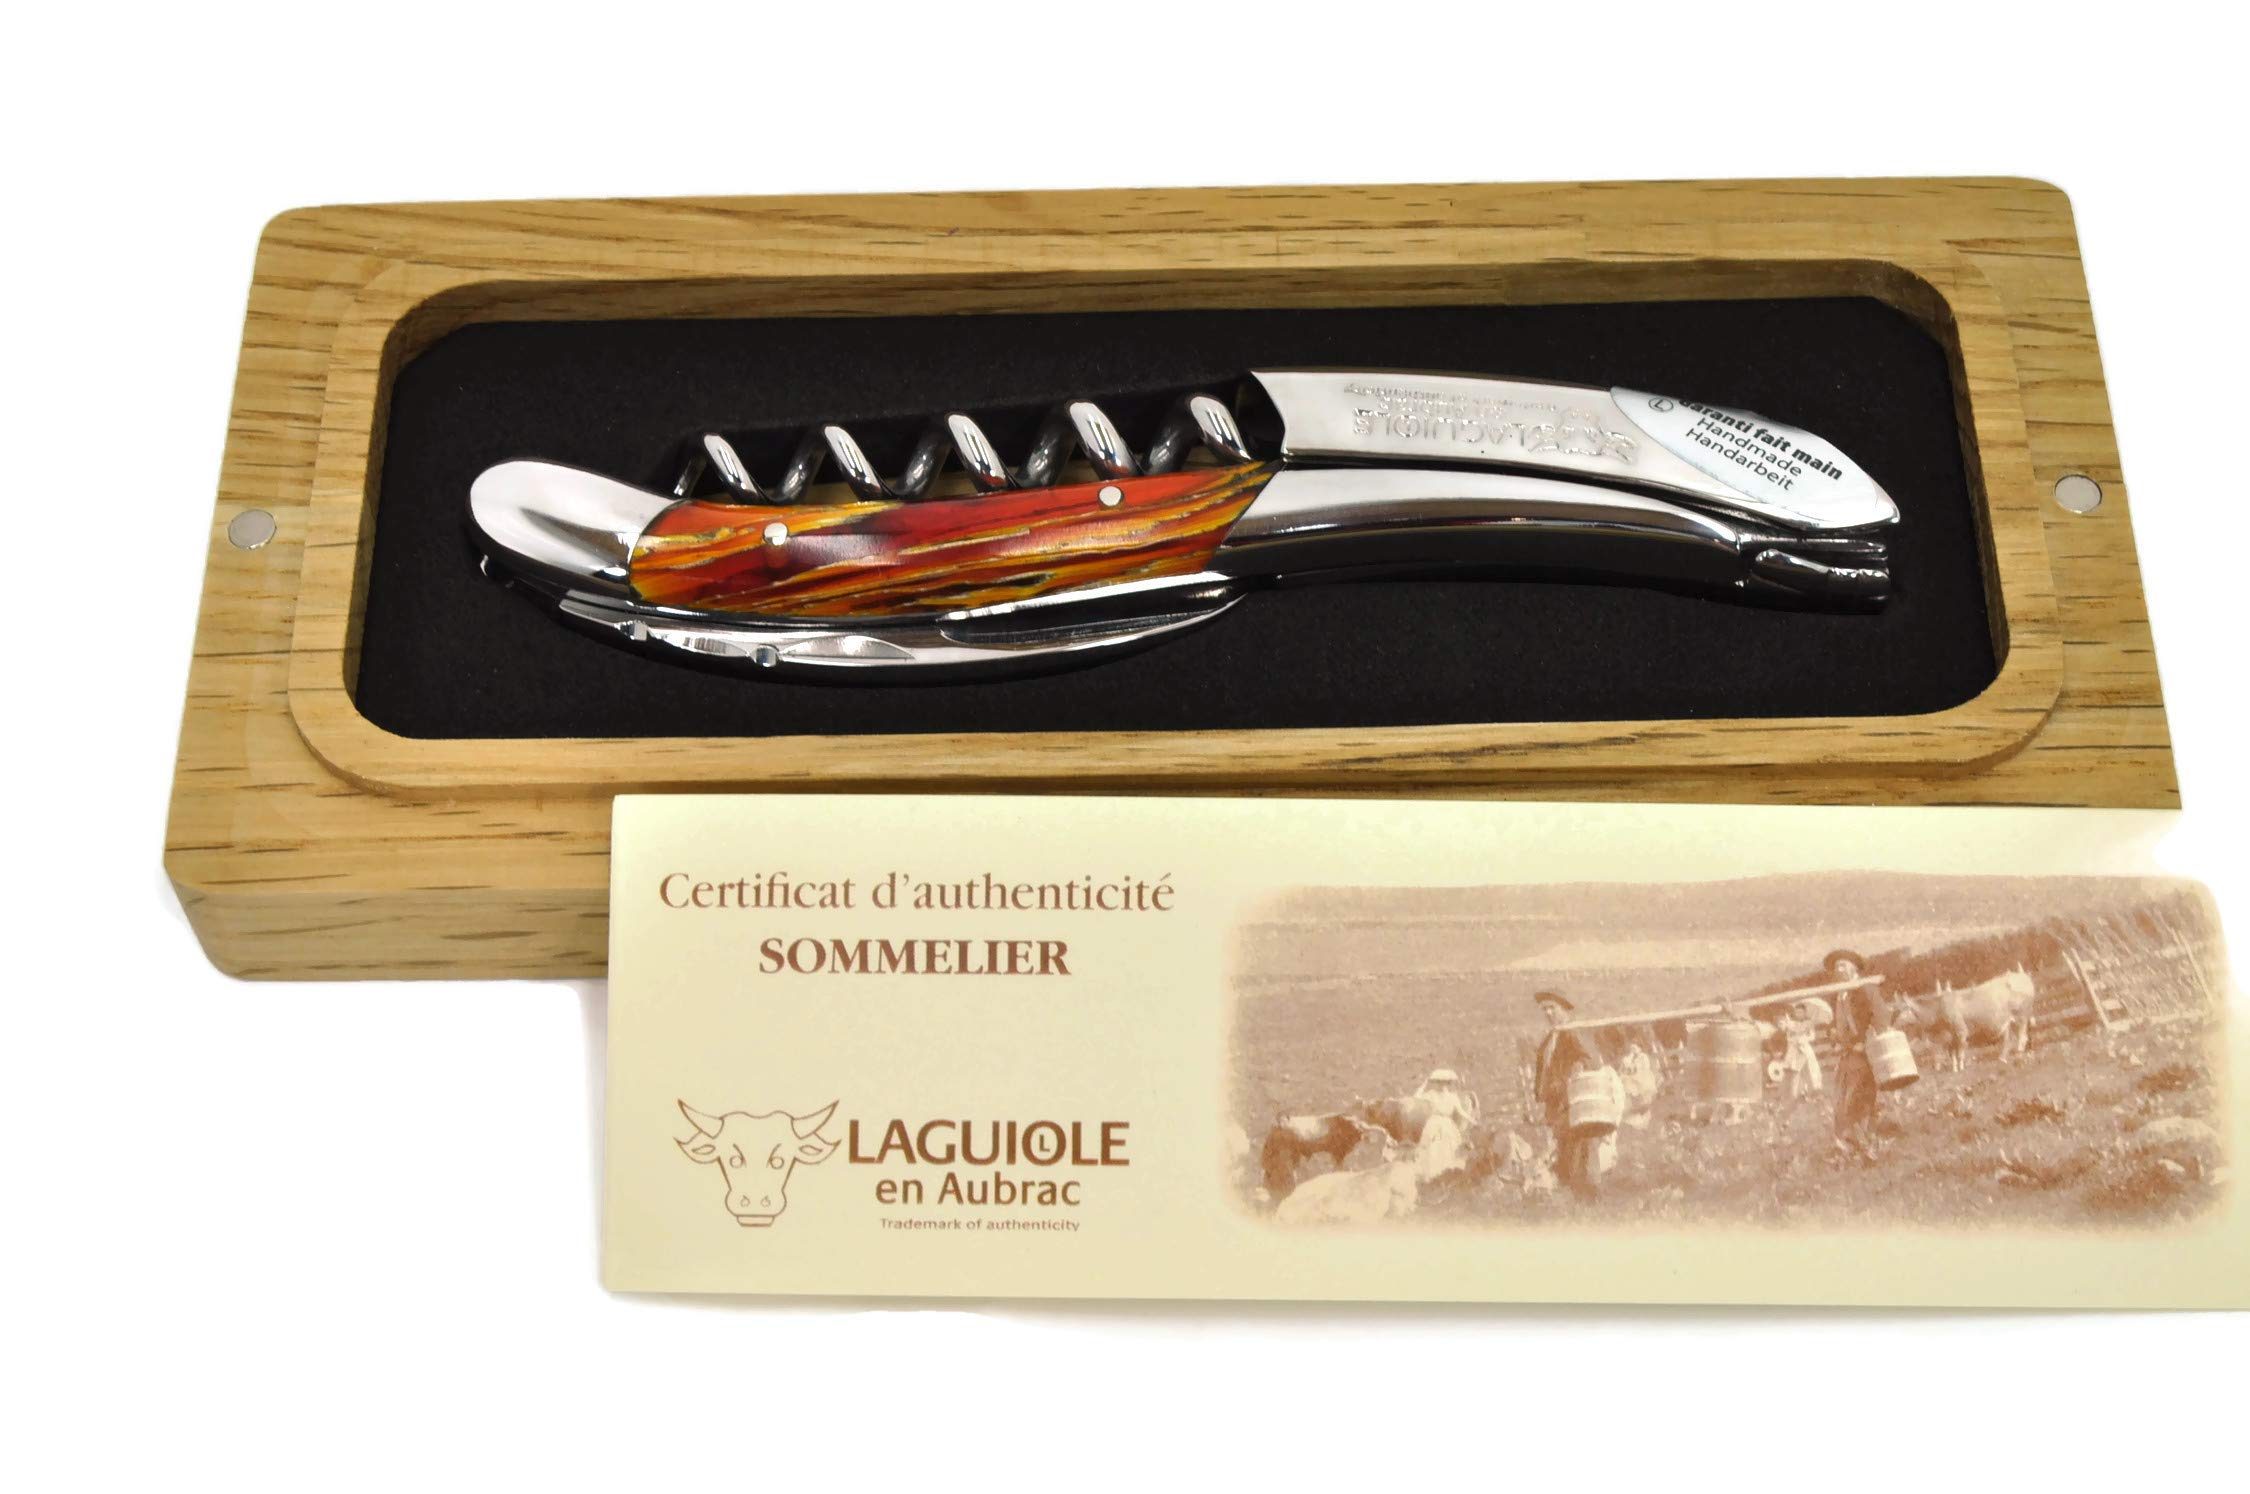 Laguiole an Aubrac Sommelier Waiter's Corkscrew with Yellow Reed Handle by Laguiole en Aubrac